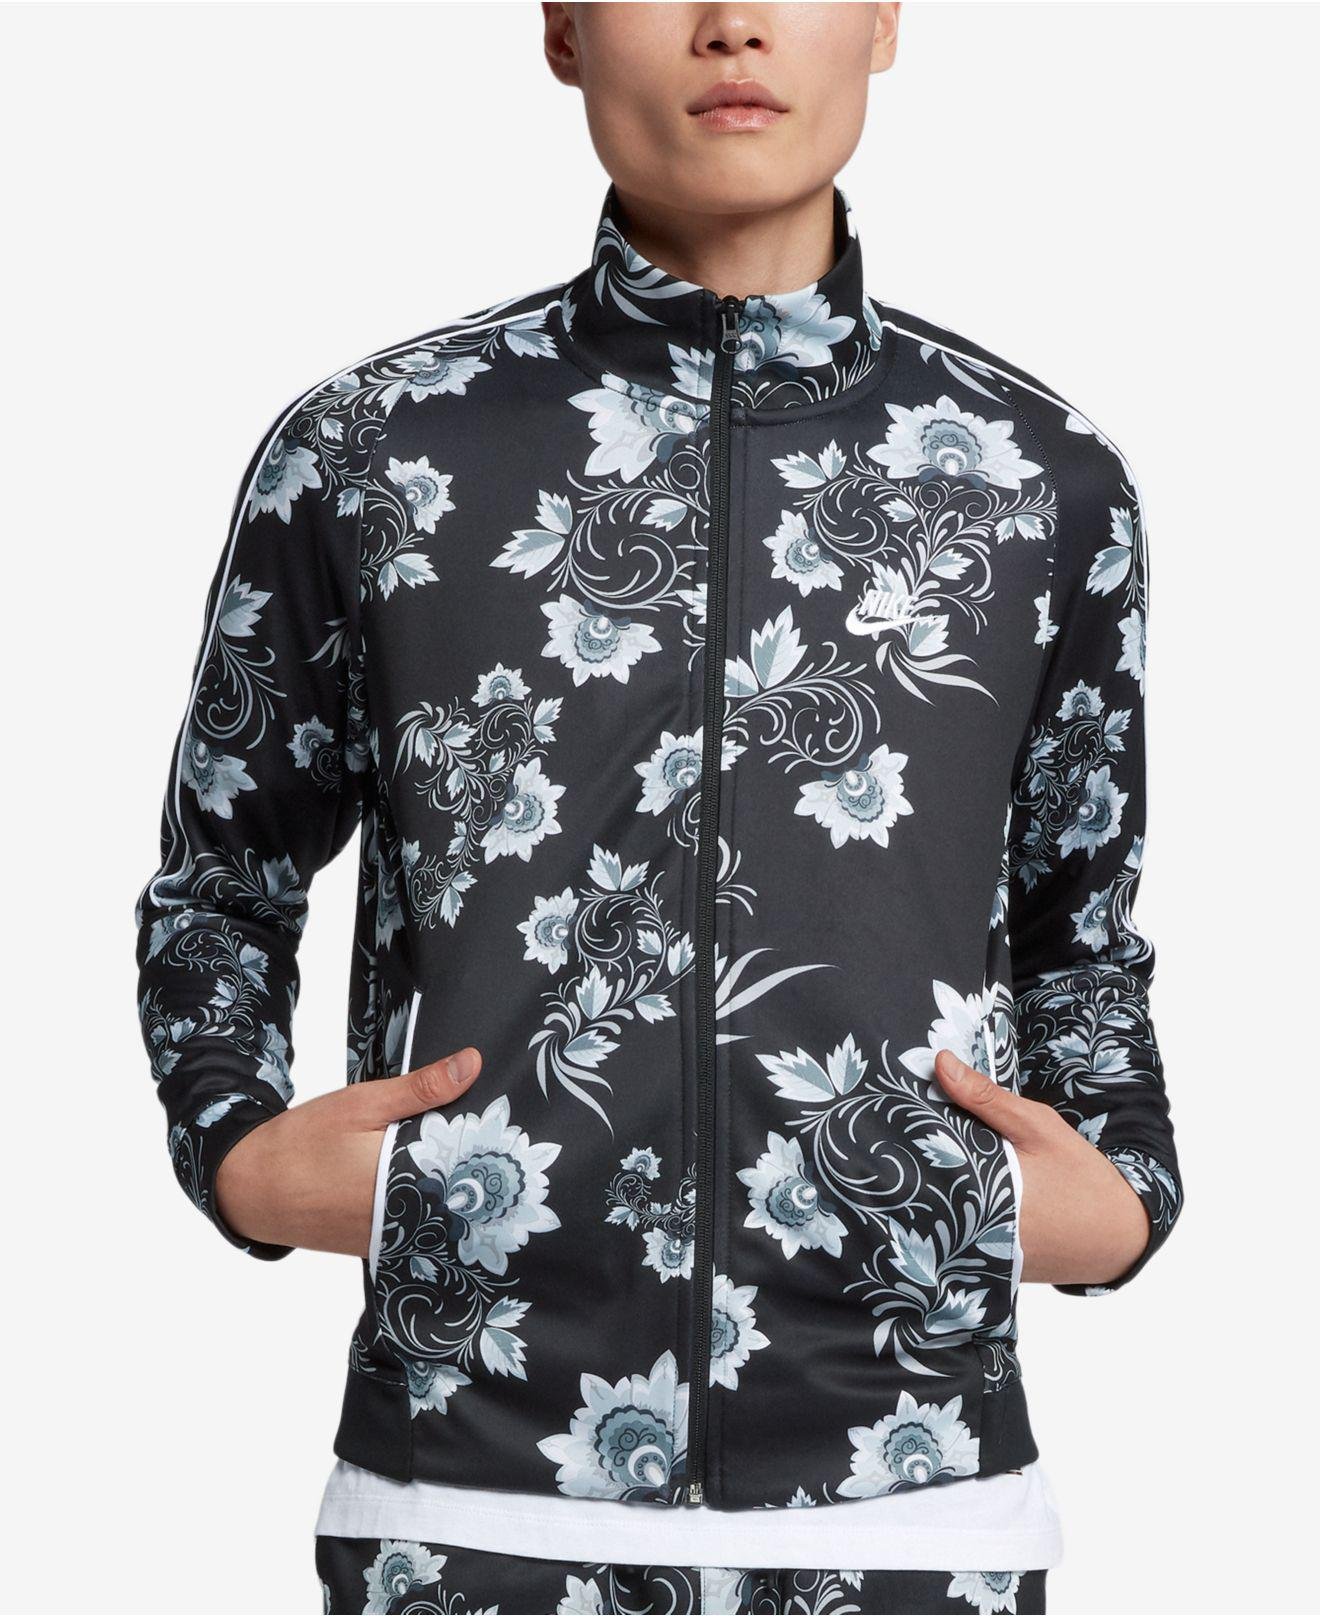 5bd7eeed1ba6 Lyst - Nike Russian-floral Inspired Track Jacket in White for Men